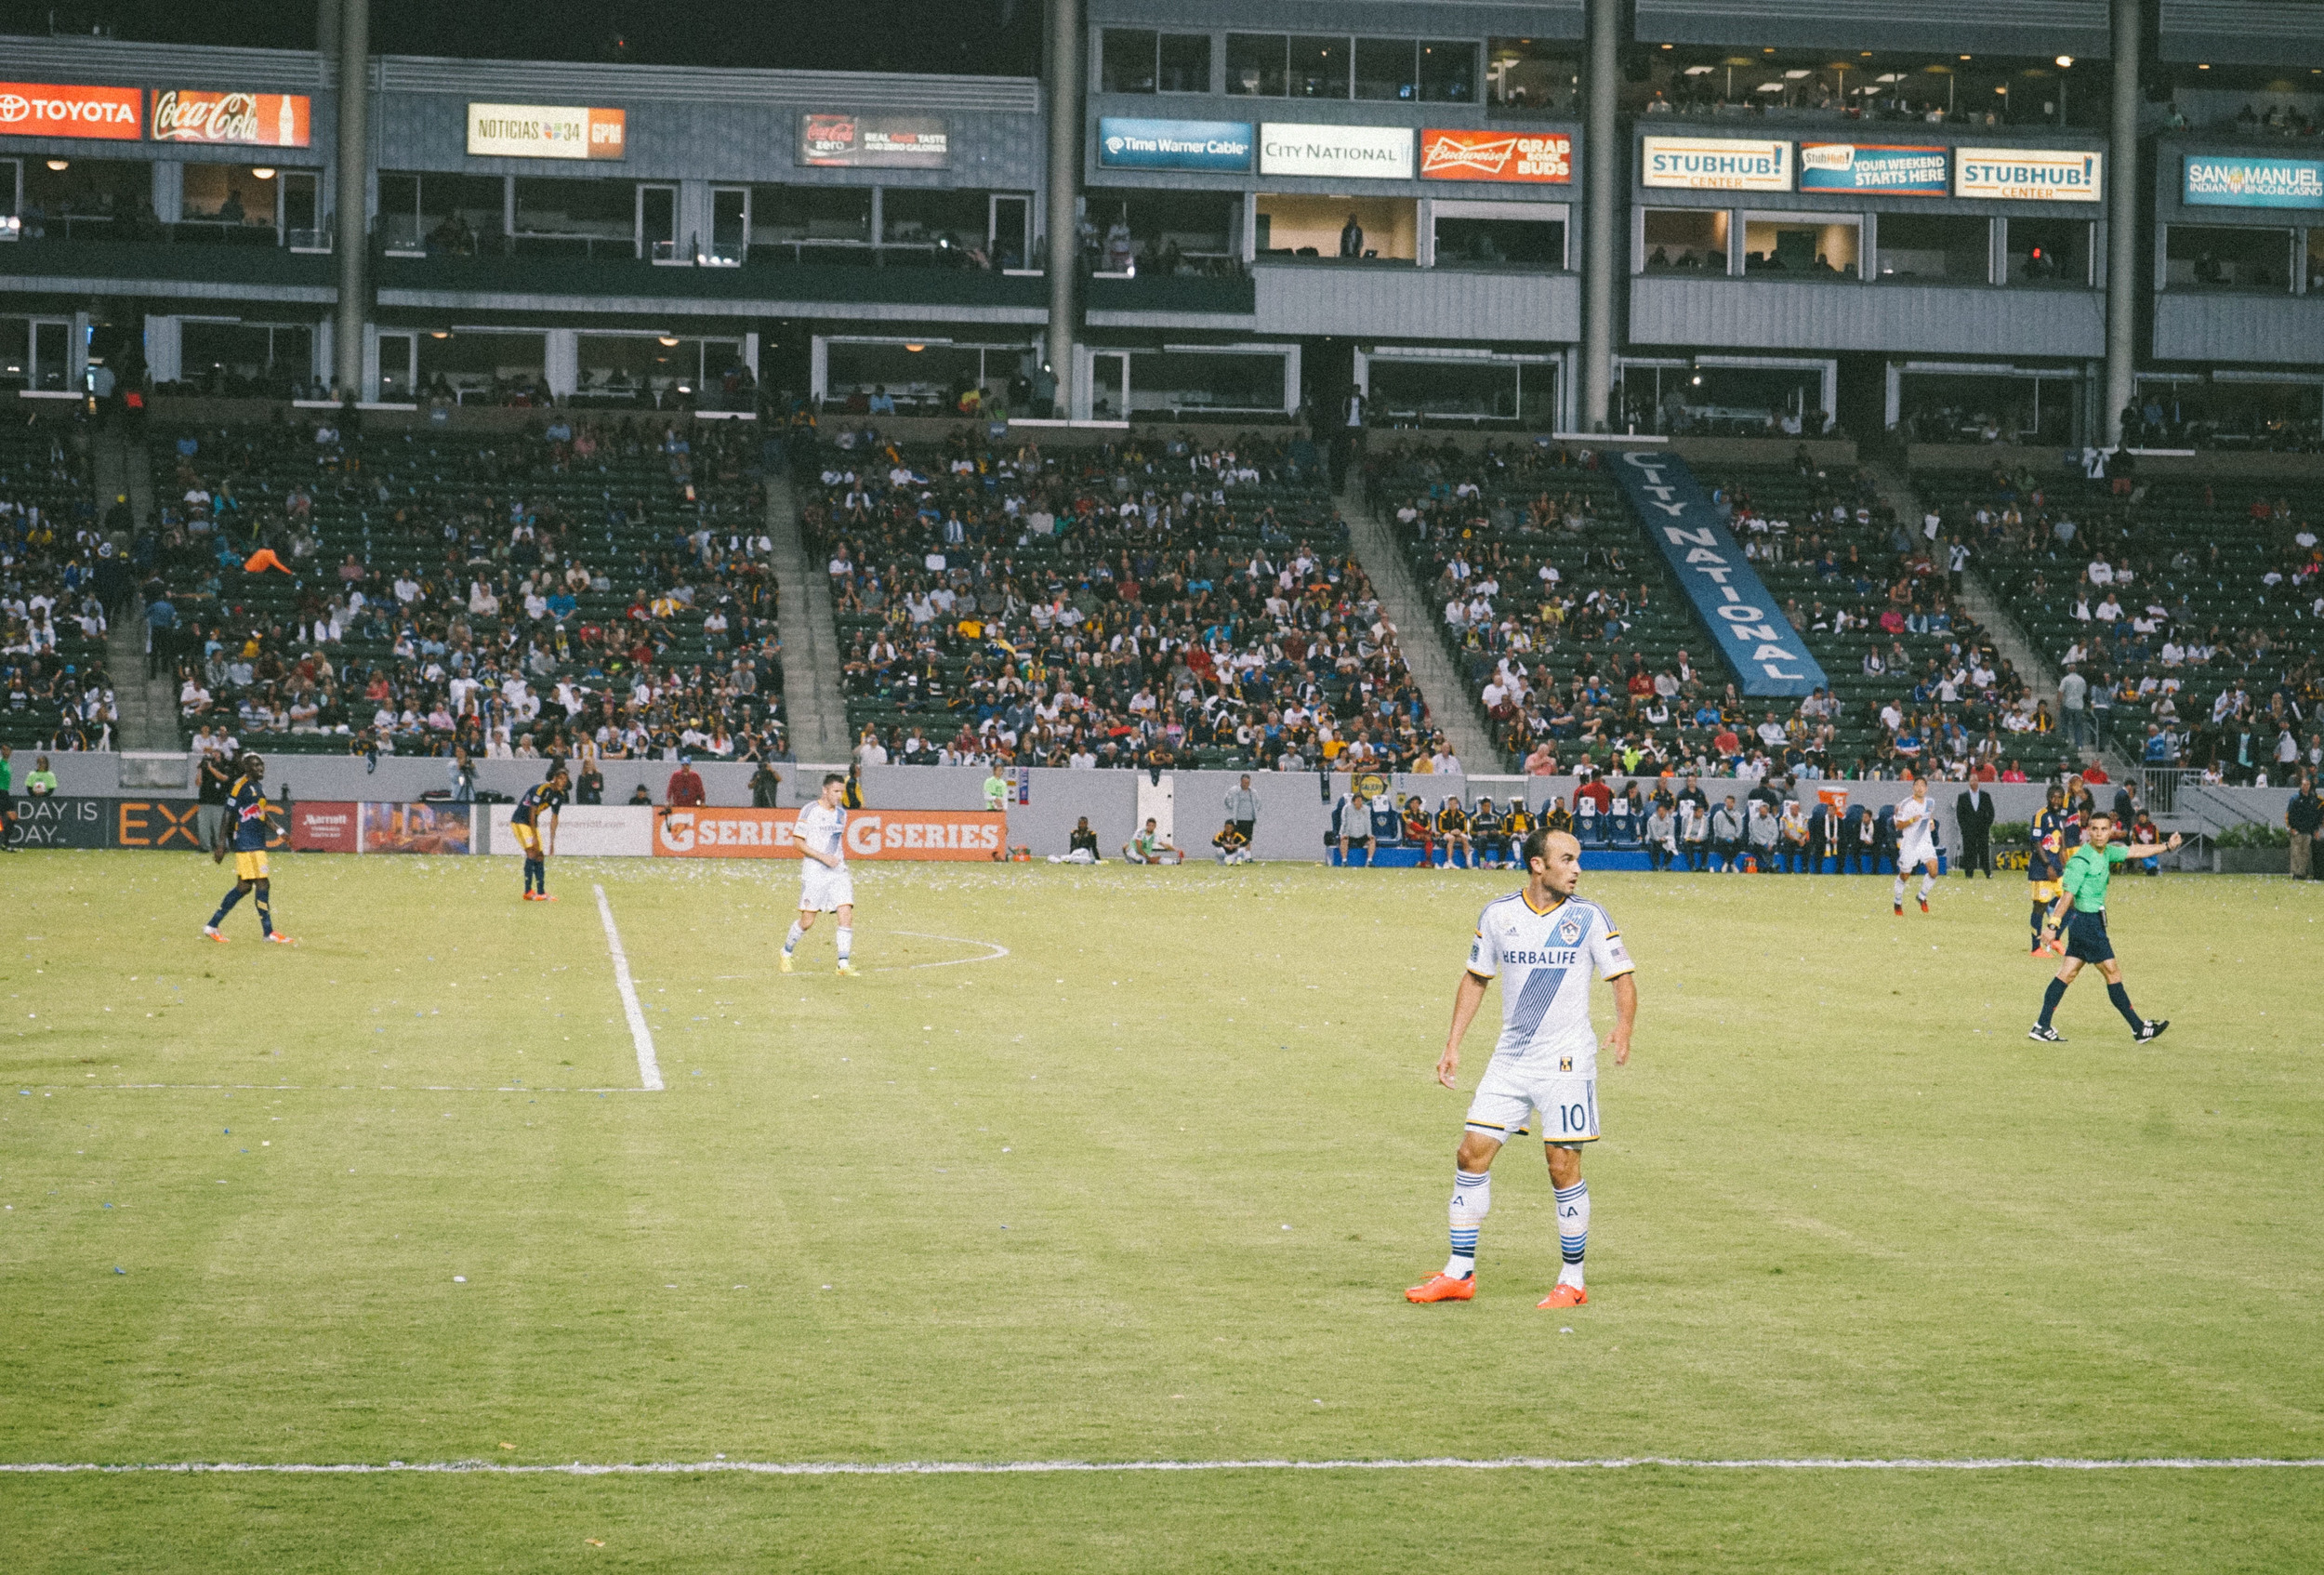 Landon Donovan. - NY Red Bulls @ LA Galaxy